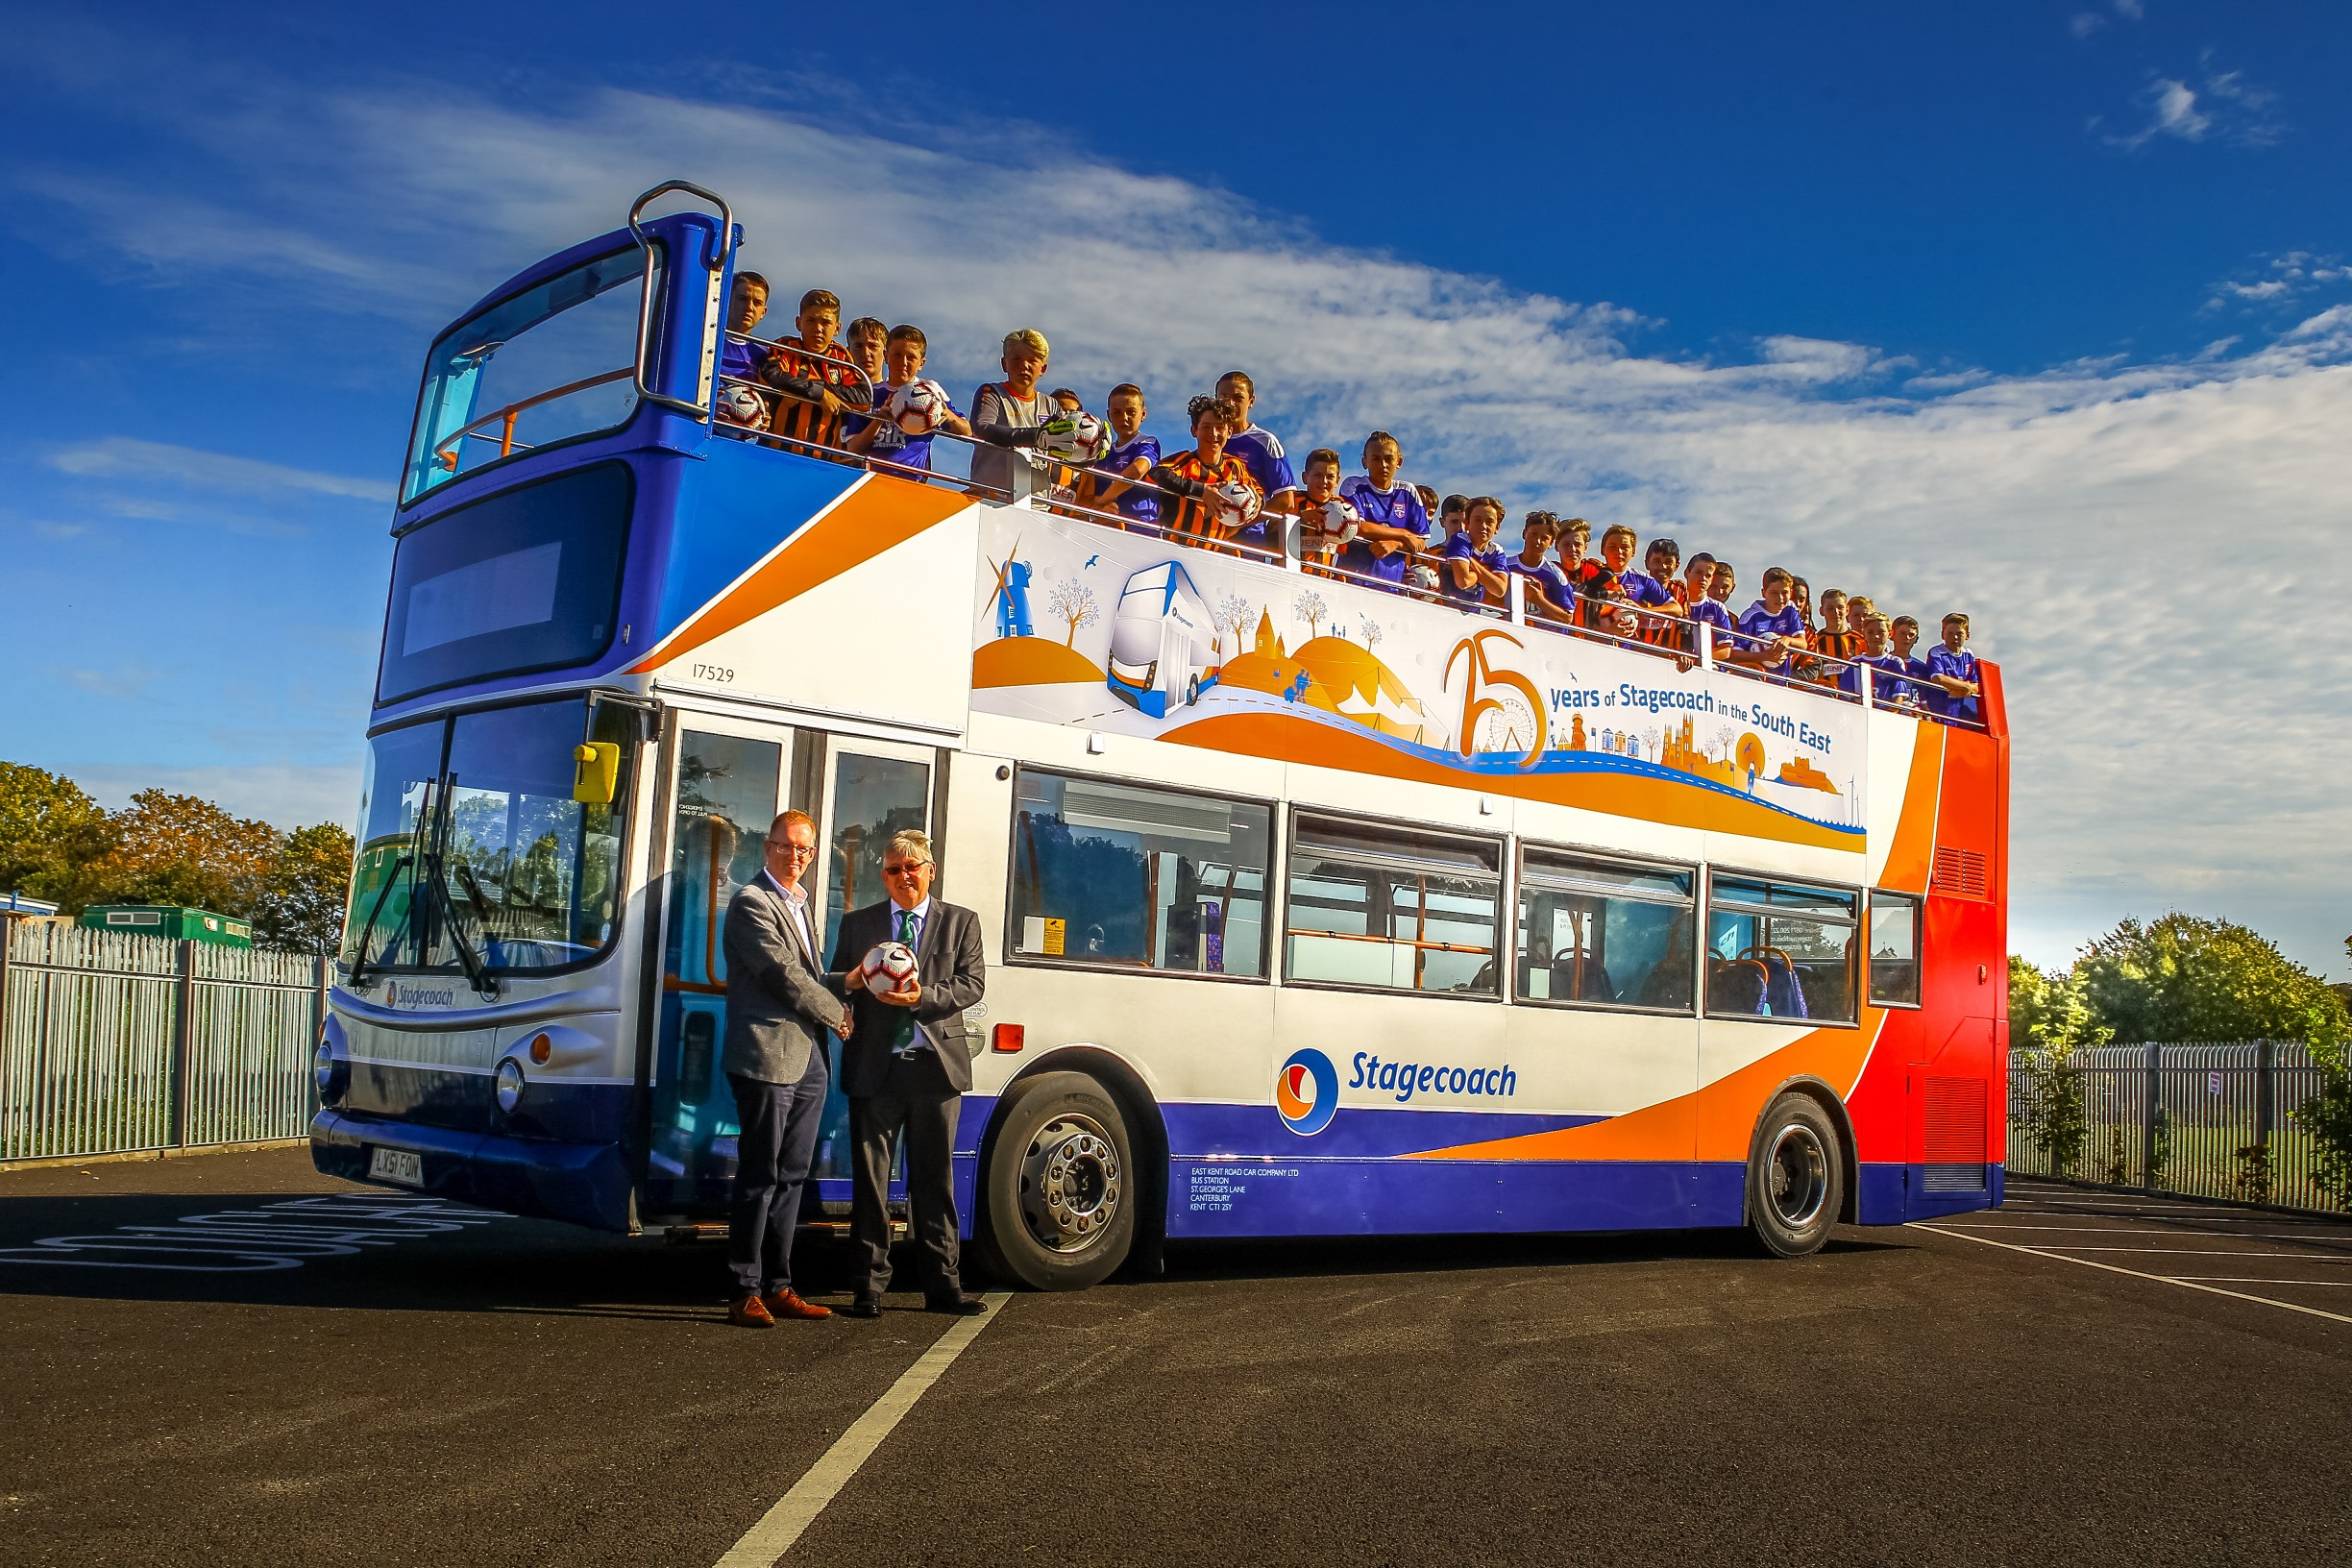 Stagecoach launch